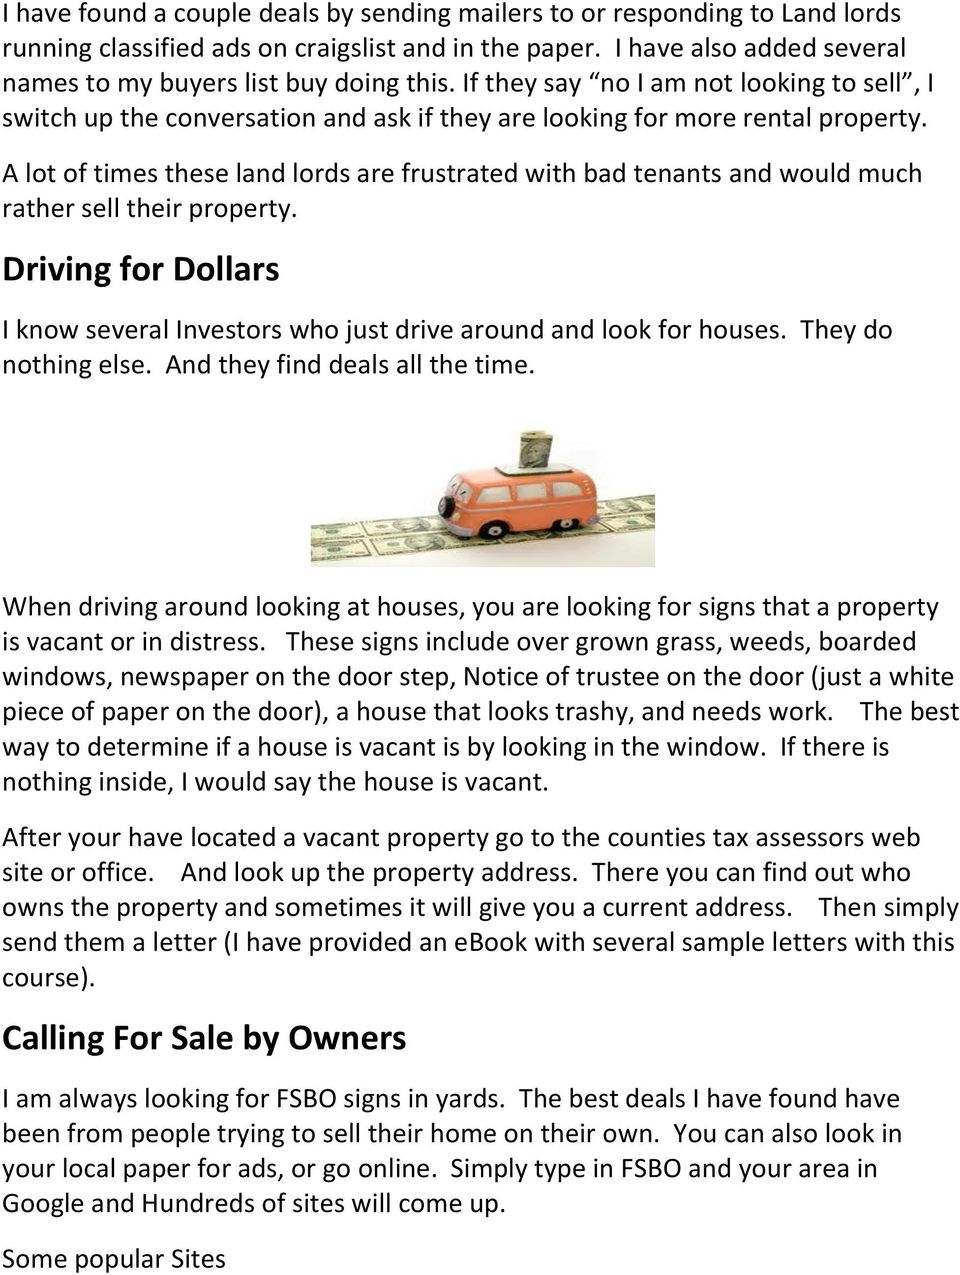 New Real Estate Investor Training - PDF